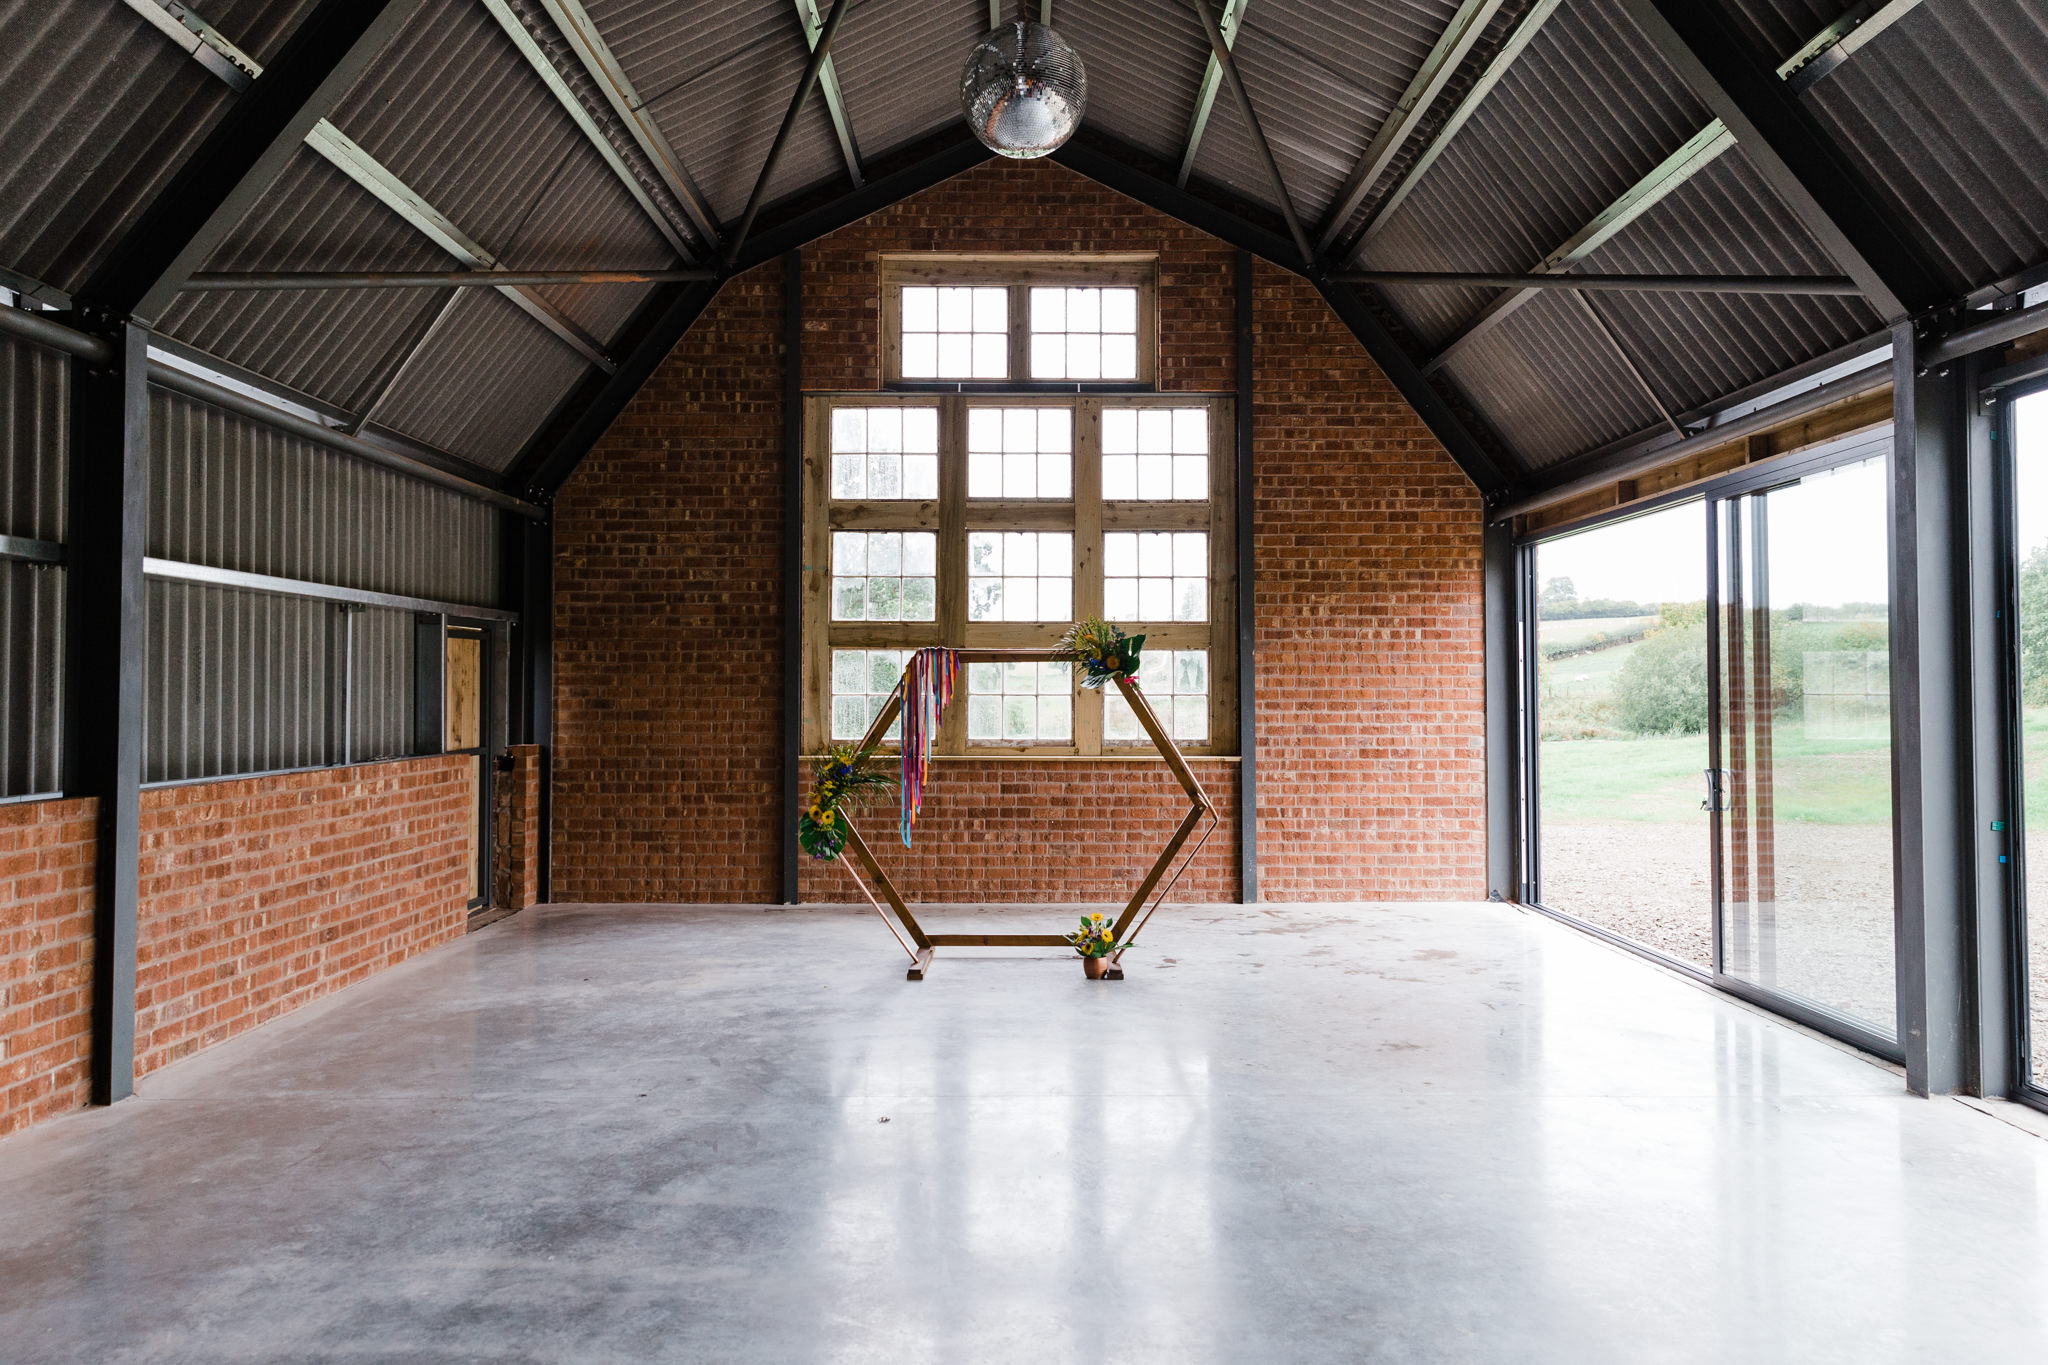 Giraffe Shed Wedding Venue an awesome blank canvas to make your own